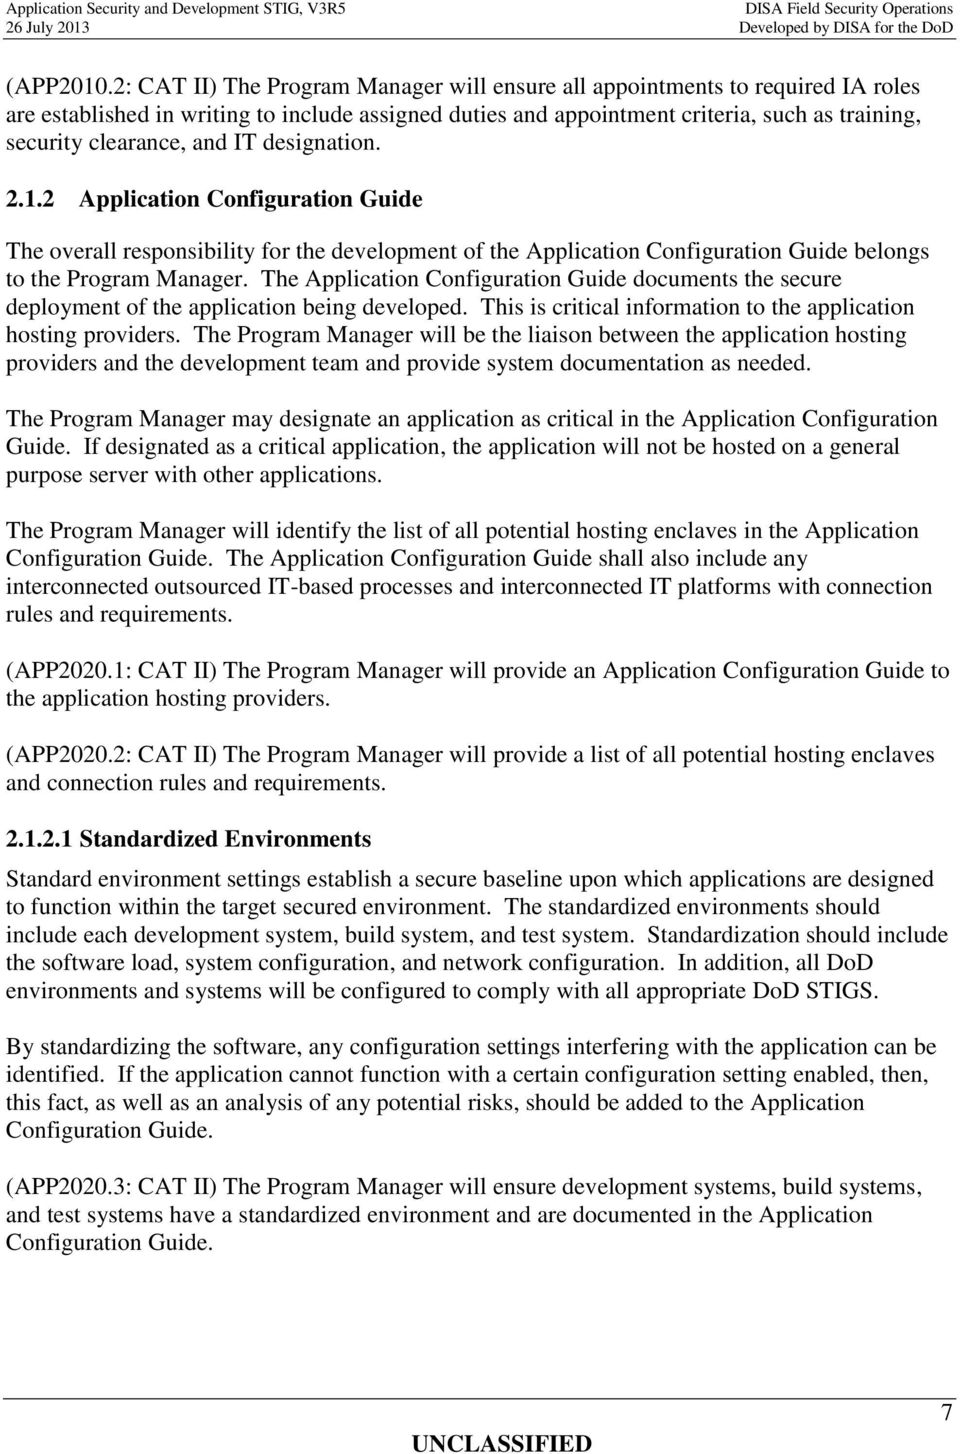 APPLICATION SECURITY AND DEVELOPMENT SECURITY TECHNICAL ...